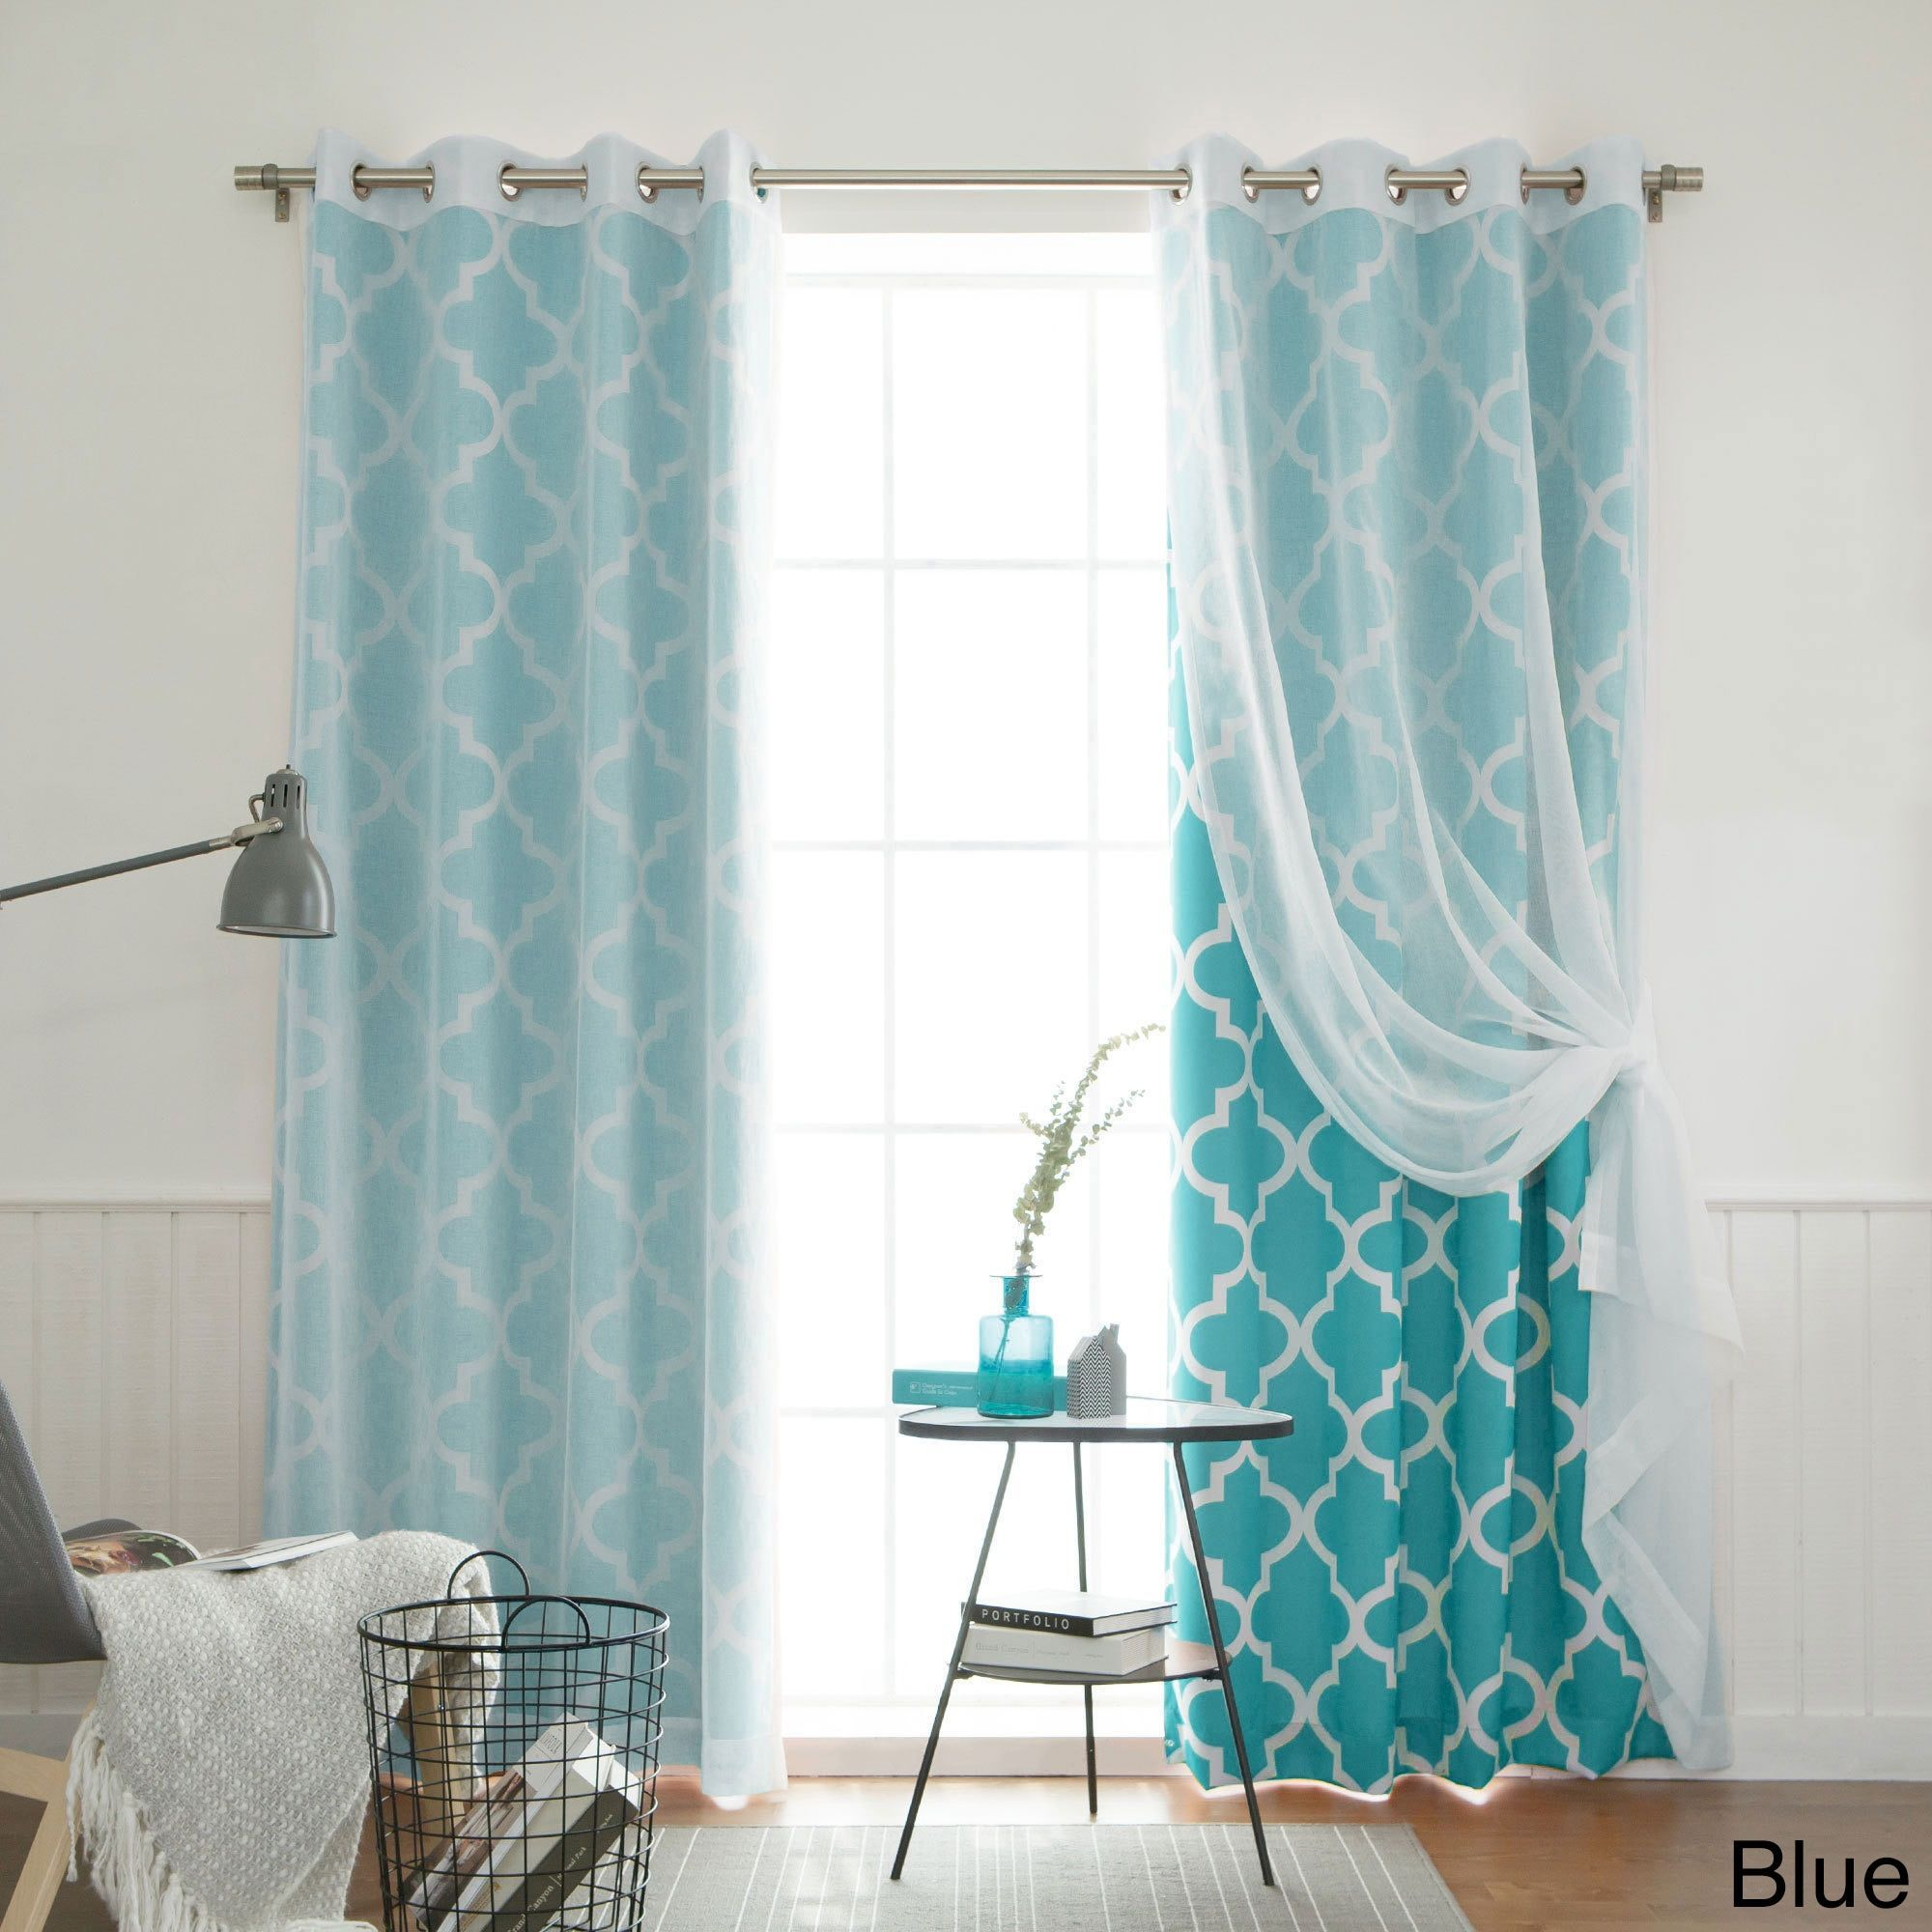 Blue moroccan curtains - Aurora Home Mix And Match Curtains Muji Sheer Moroccan 84 Inch 4 Piece Curtain